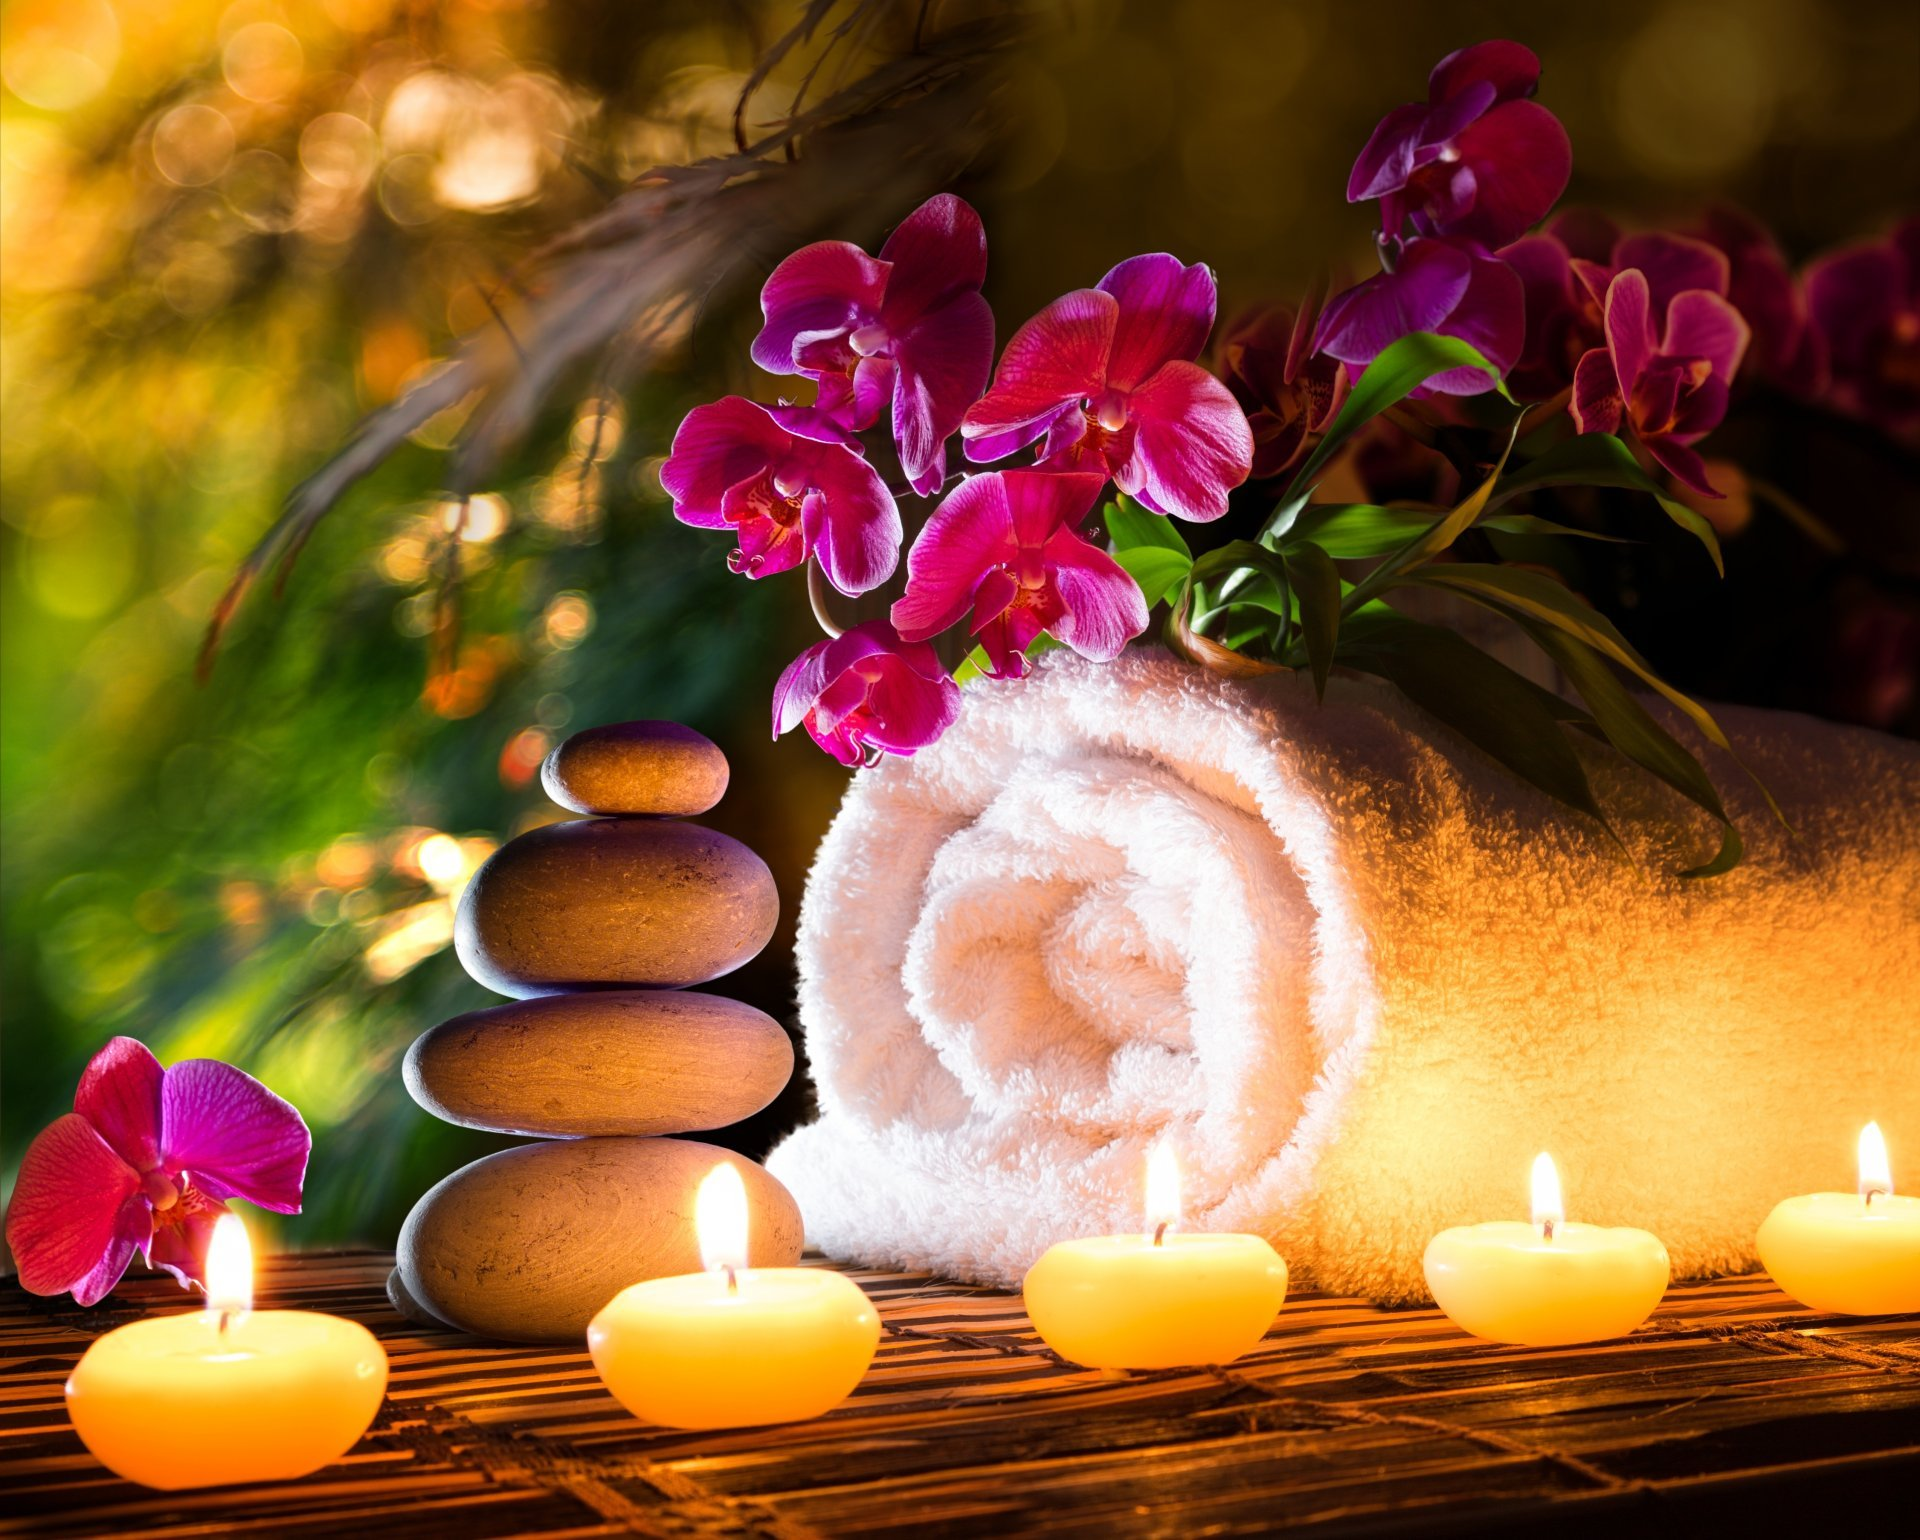 towel-spa-stones-candles-flower-orchid.jpg